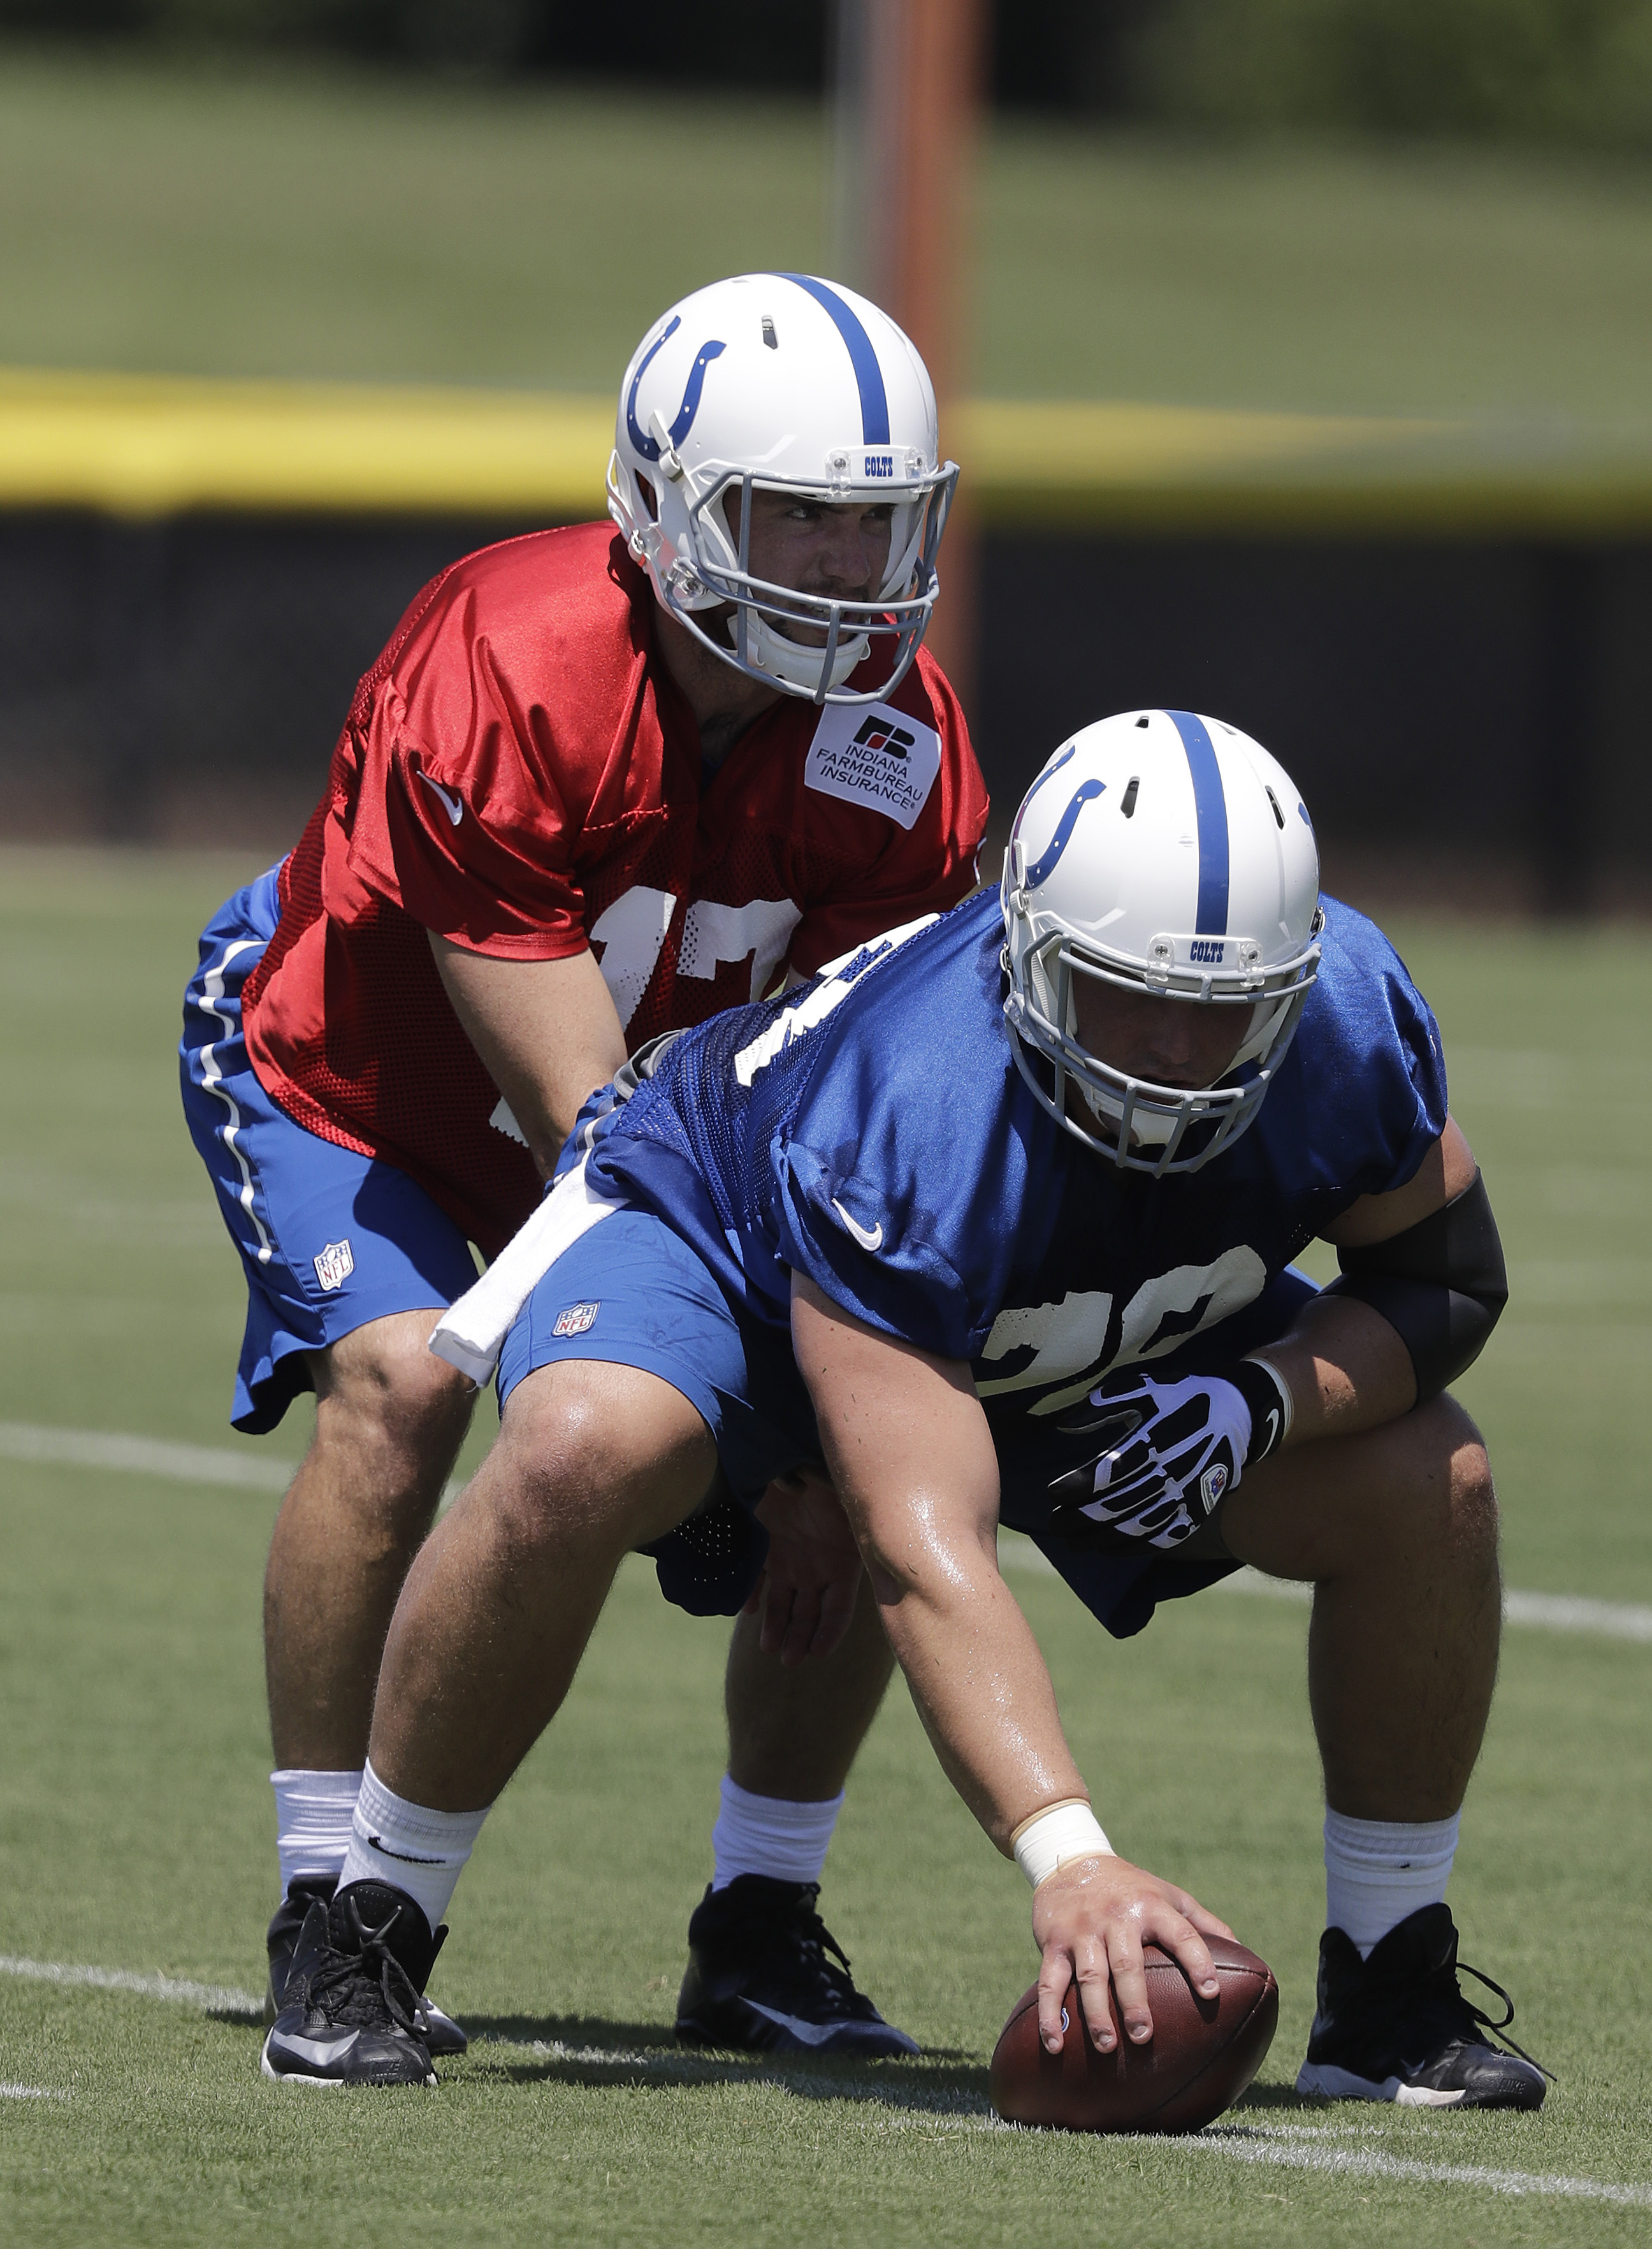 Indianapolis Colts quarterback Andrew Luck and center Ryan Kelly run a drill during an NFL football training camp, Wednesday, July 27, 2016, in Anderson, Ind. (AP Photo/Darron Cummings)